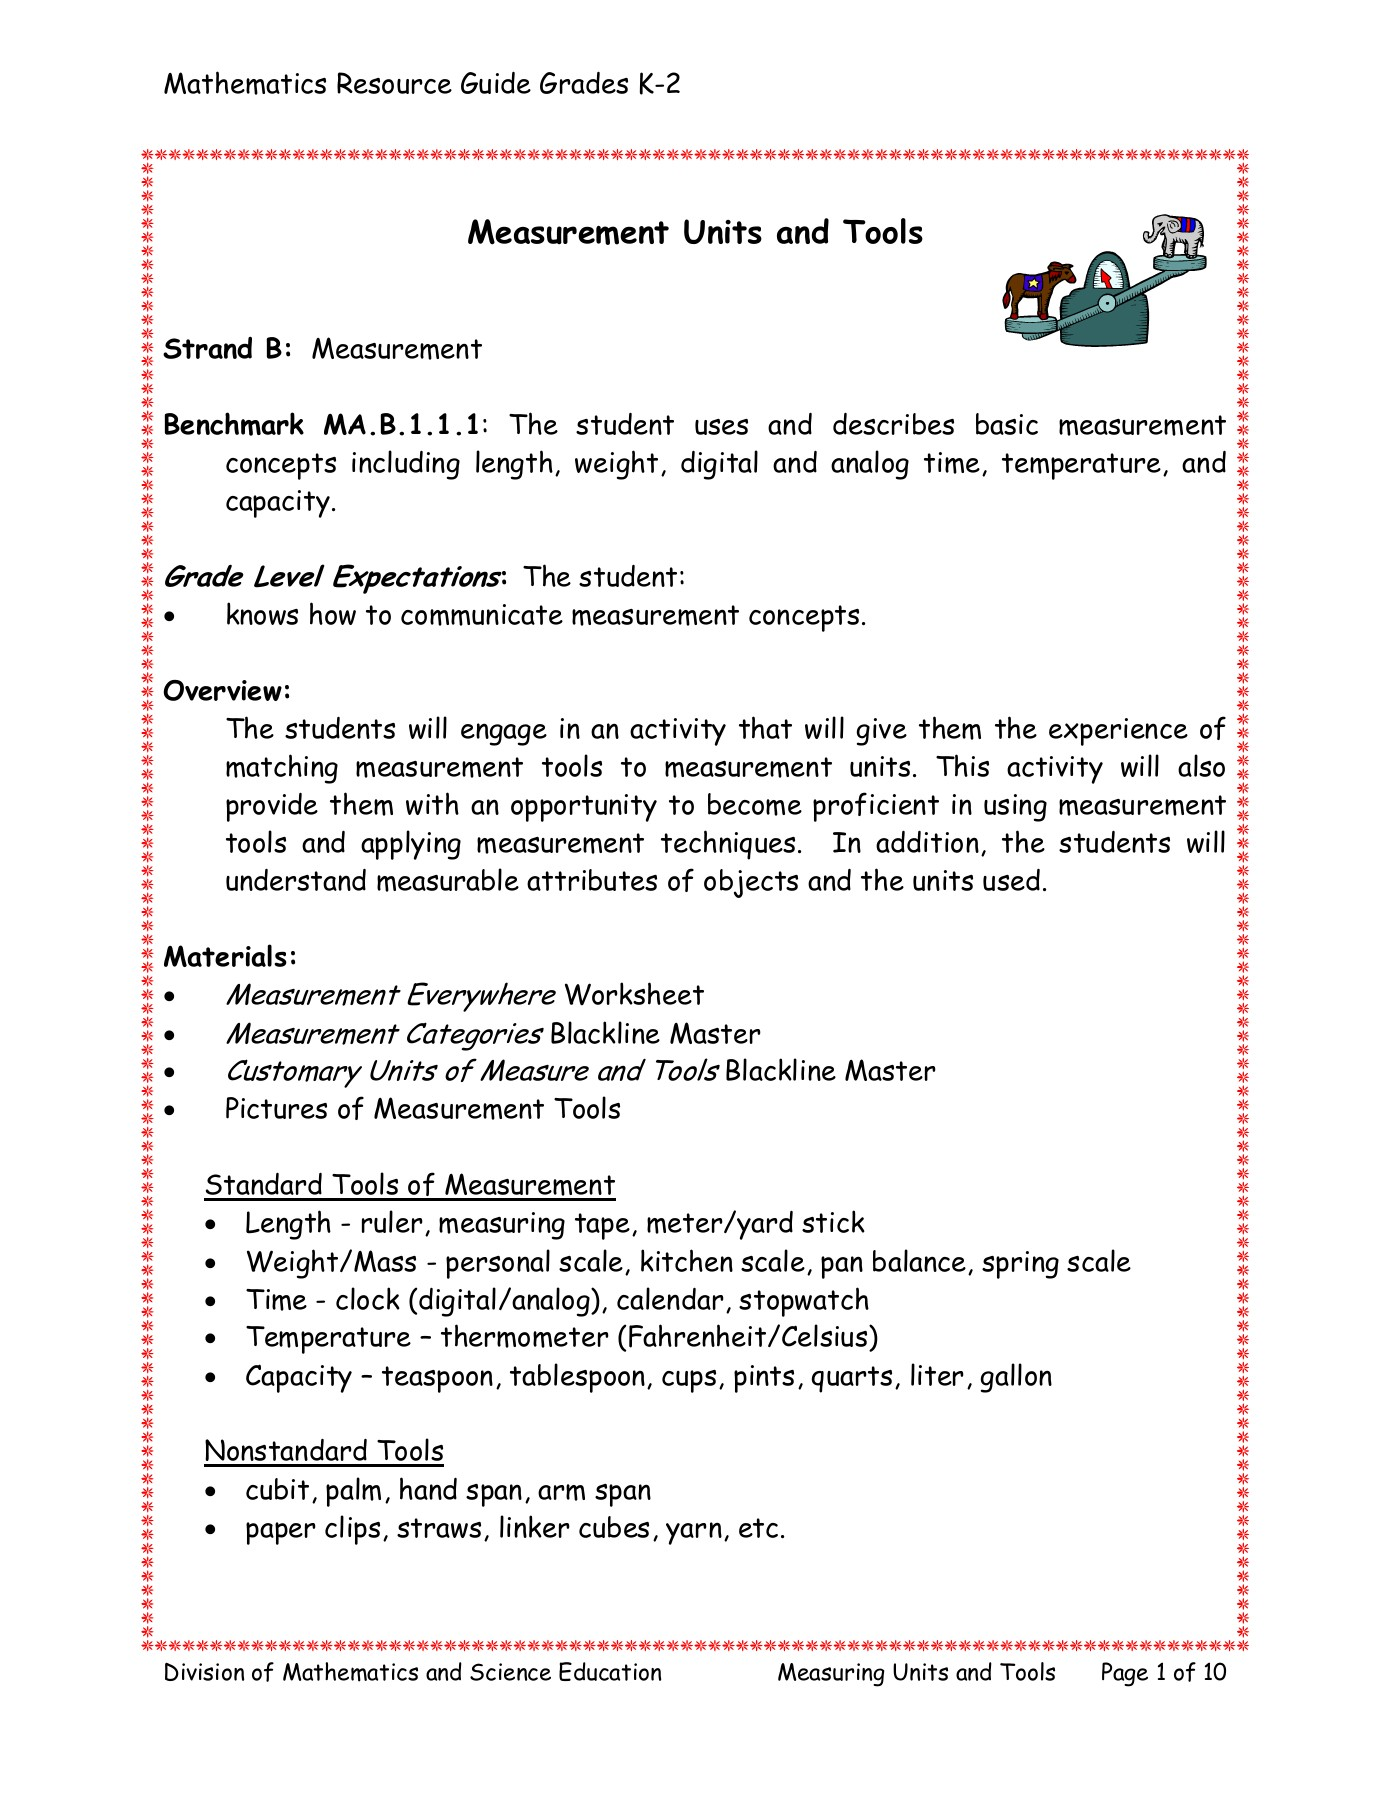 hight resolution of Measurement Units and Tools - lemarclass.wikispaces.com-Flip eBook Pages 1  - 10  AnyFlip   AnyFlip